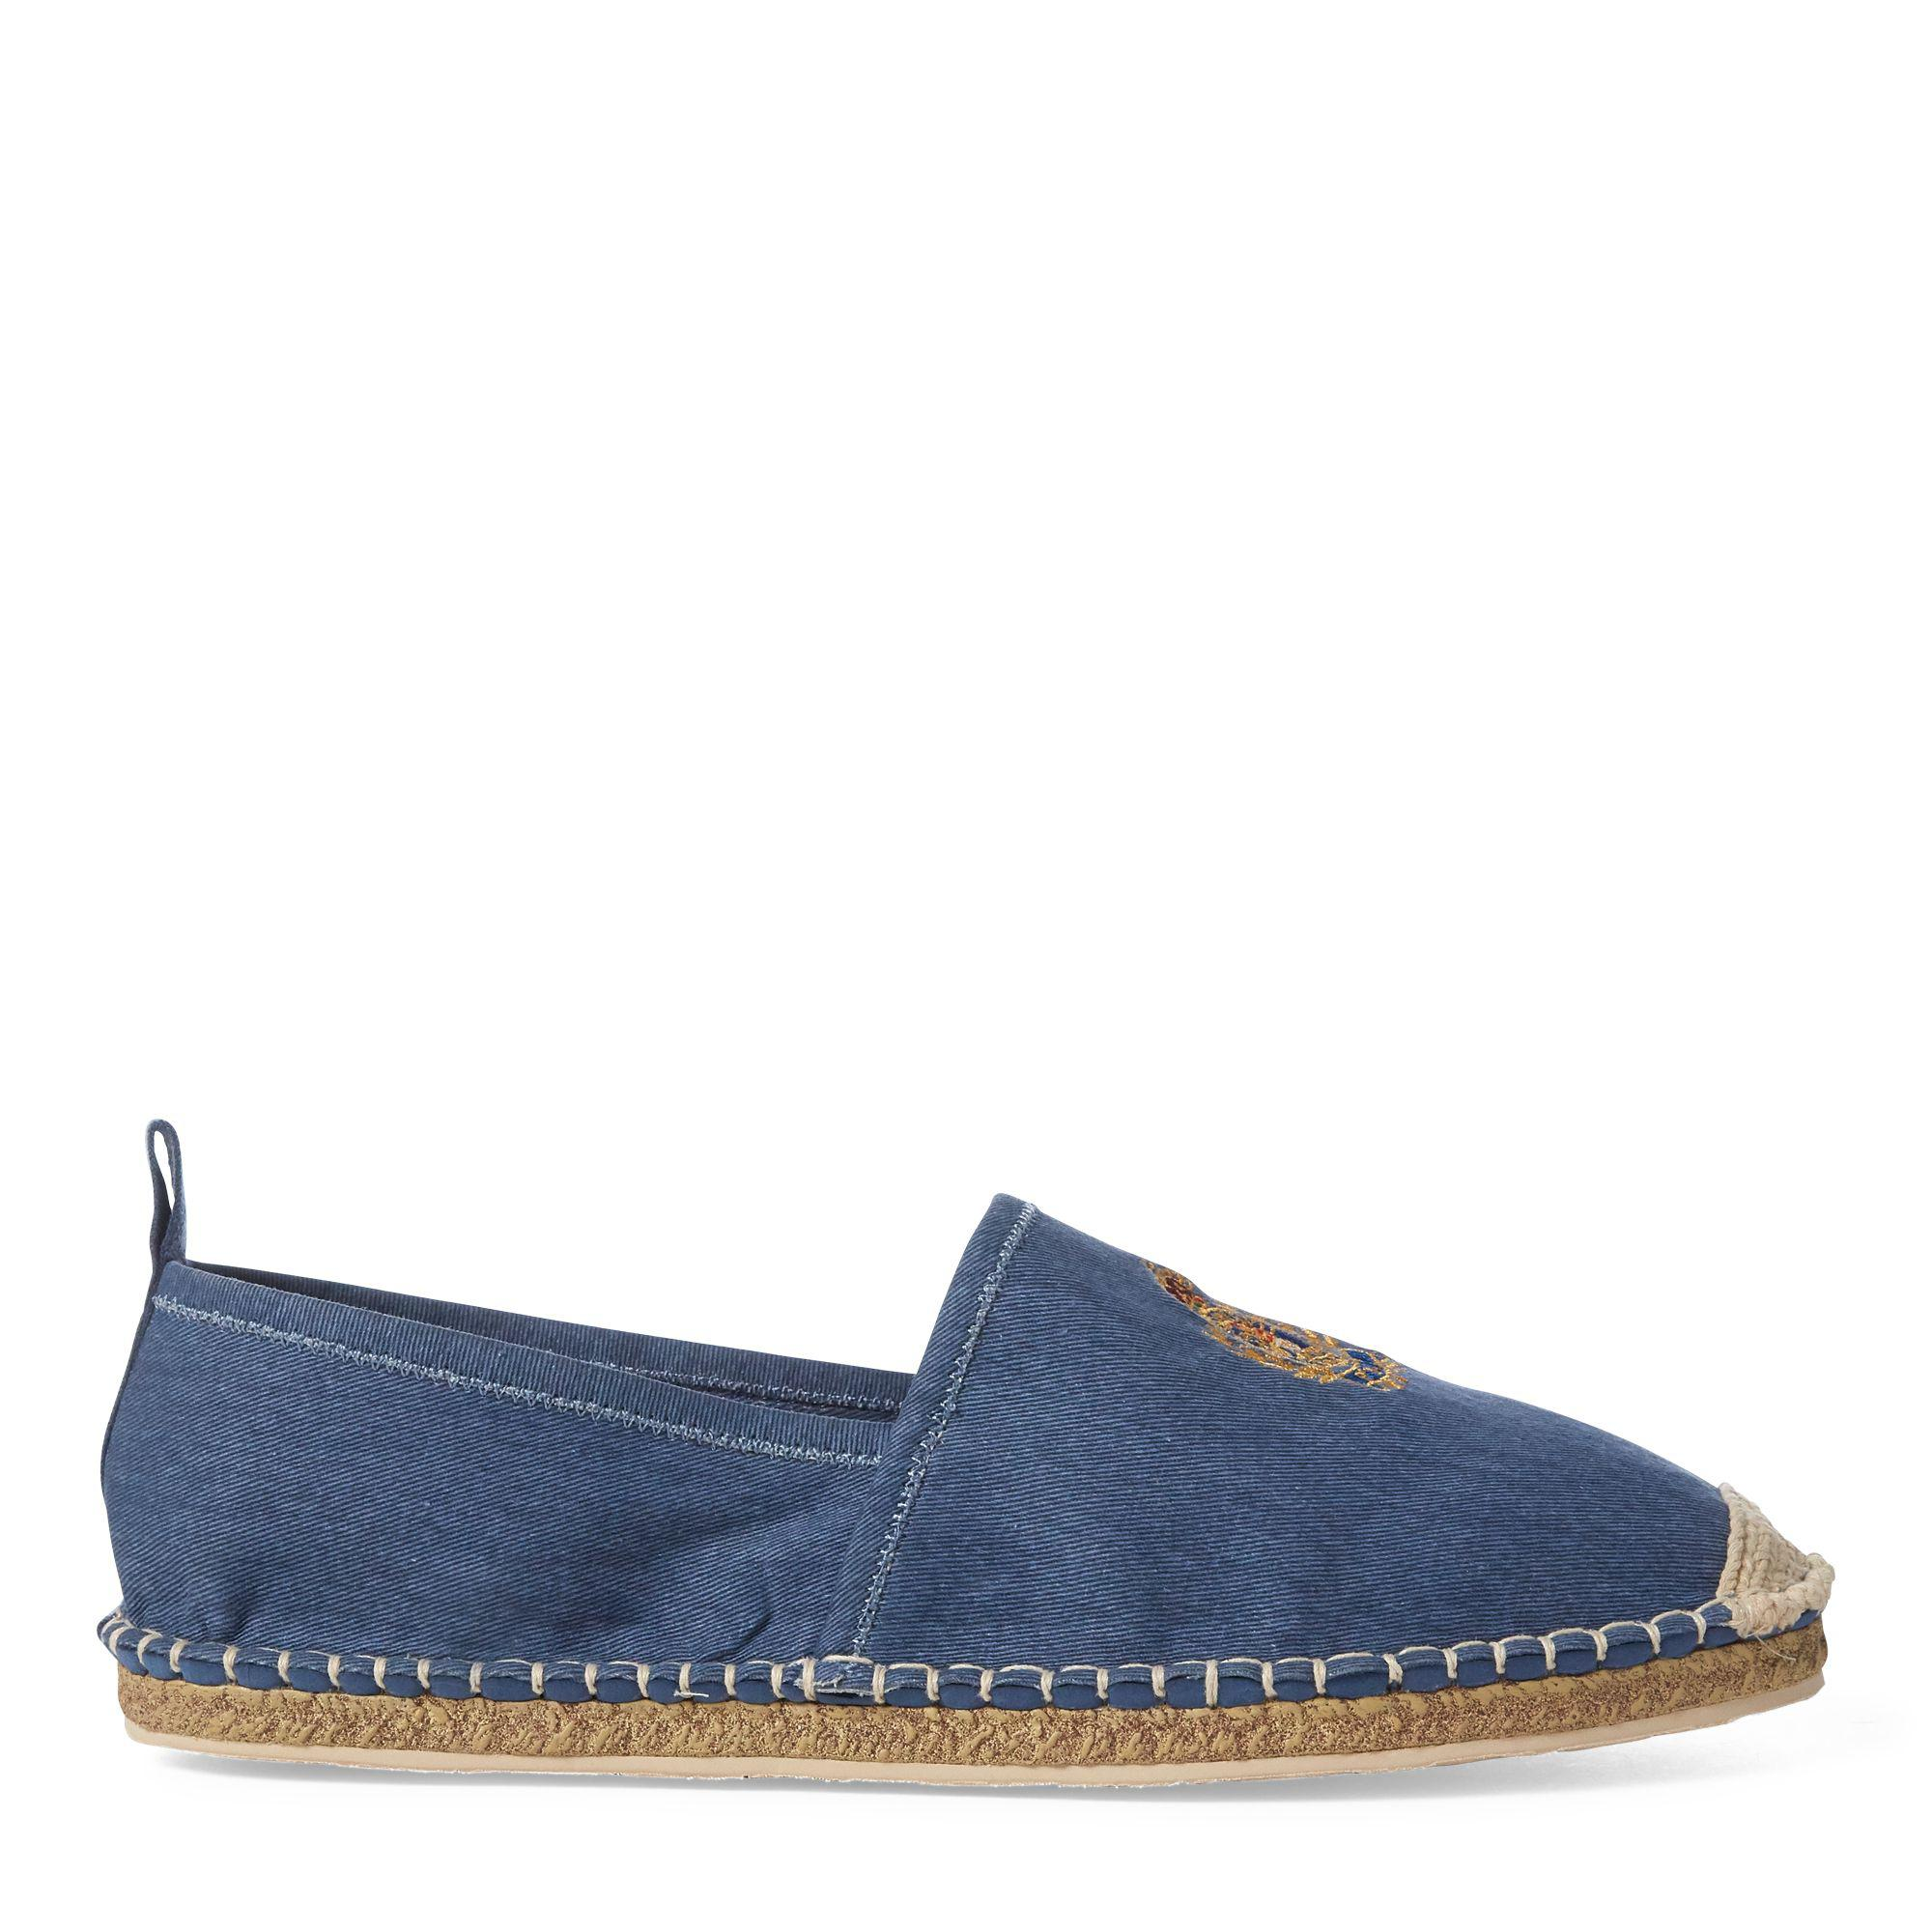 In Barron Polo Espadrille Crested Blue Lyst Ralph Lauren Men For qwEEx1XSn